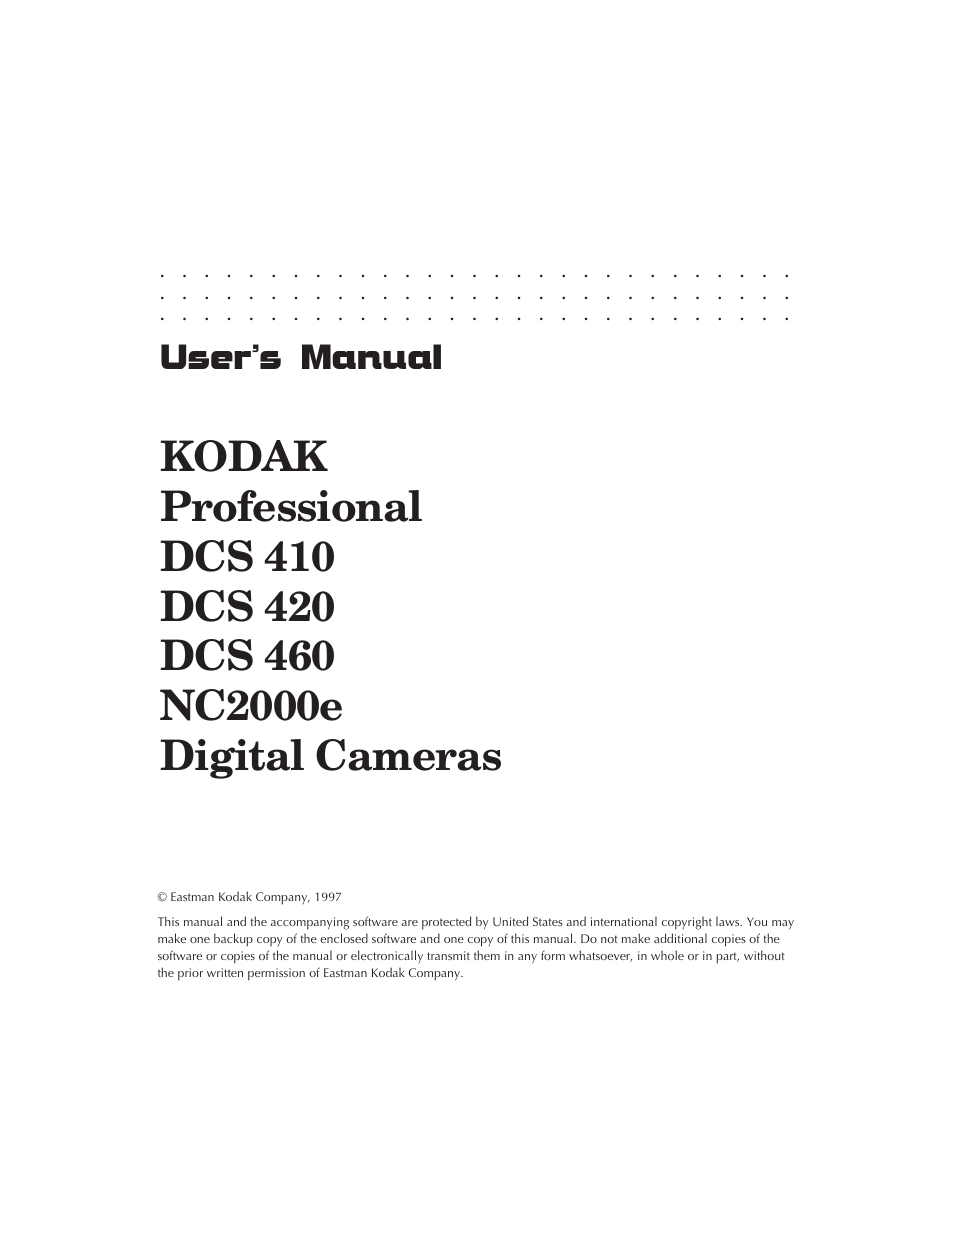 Kodak DCS 410 User Manual   322 pages   Also for: DCS 460, DCS 420